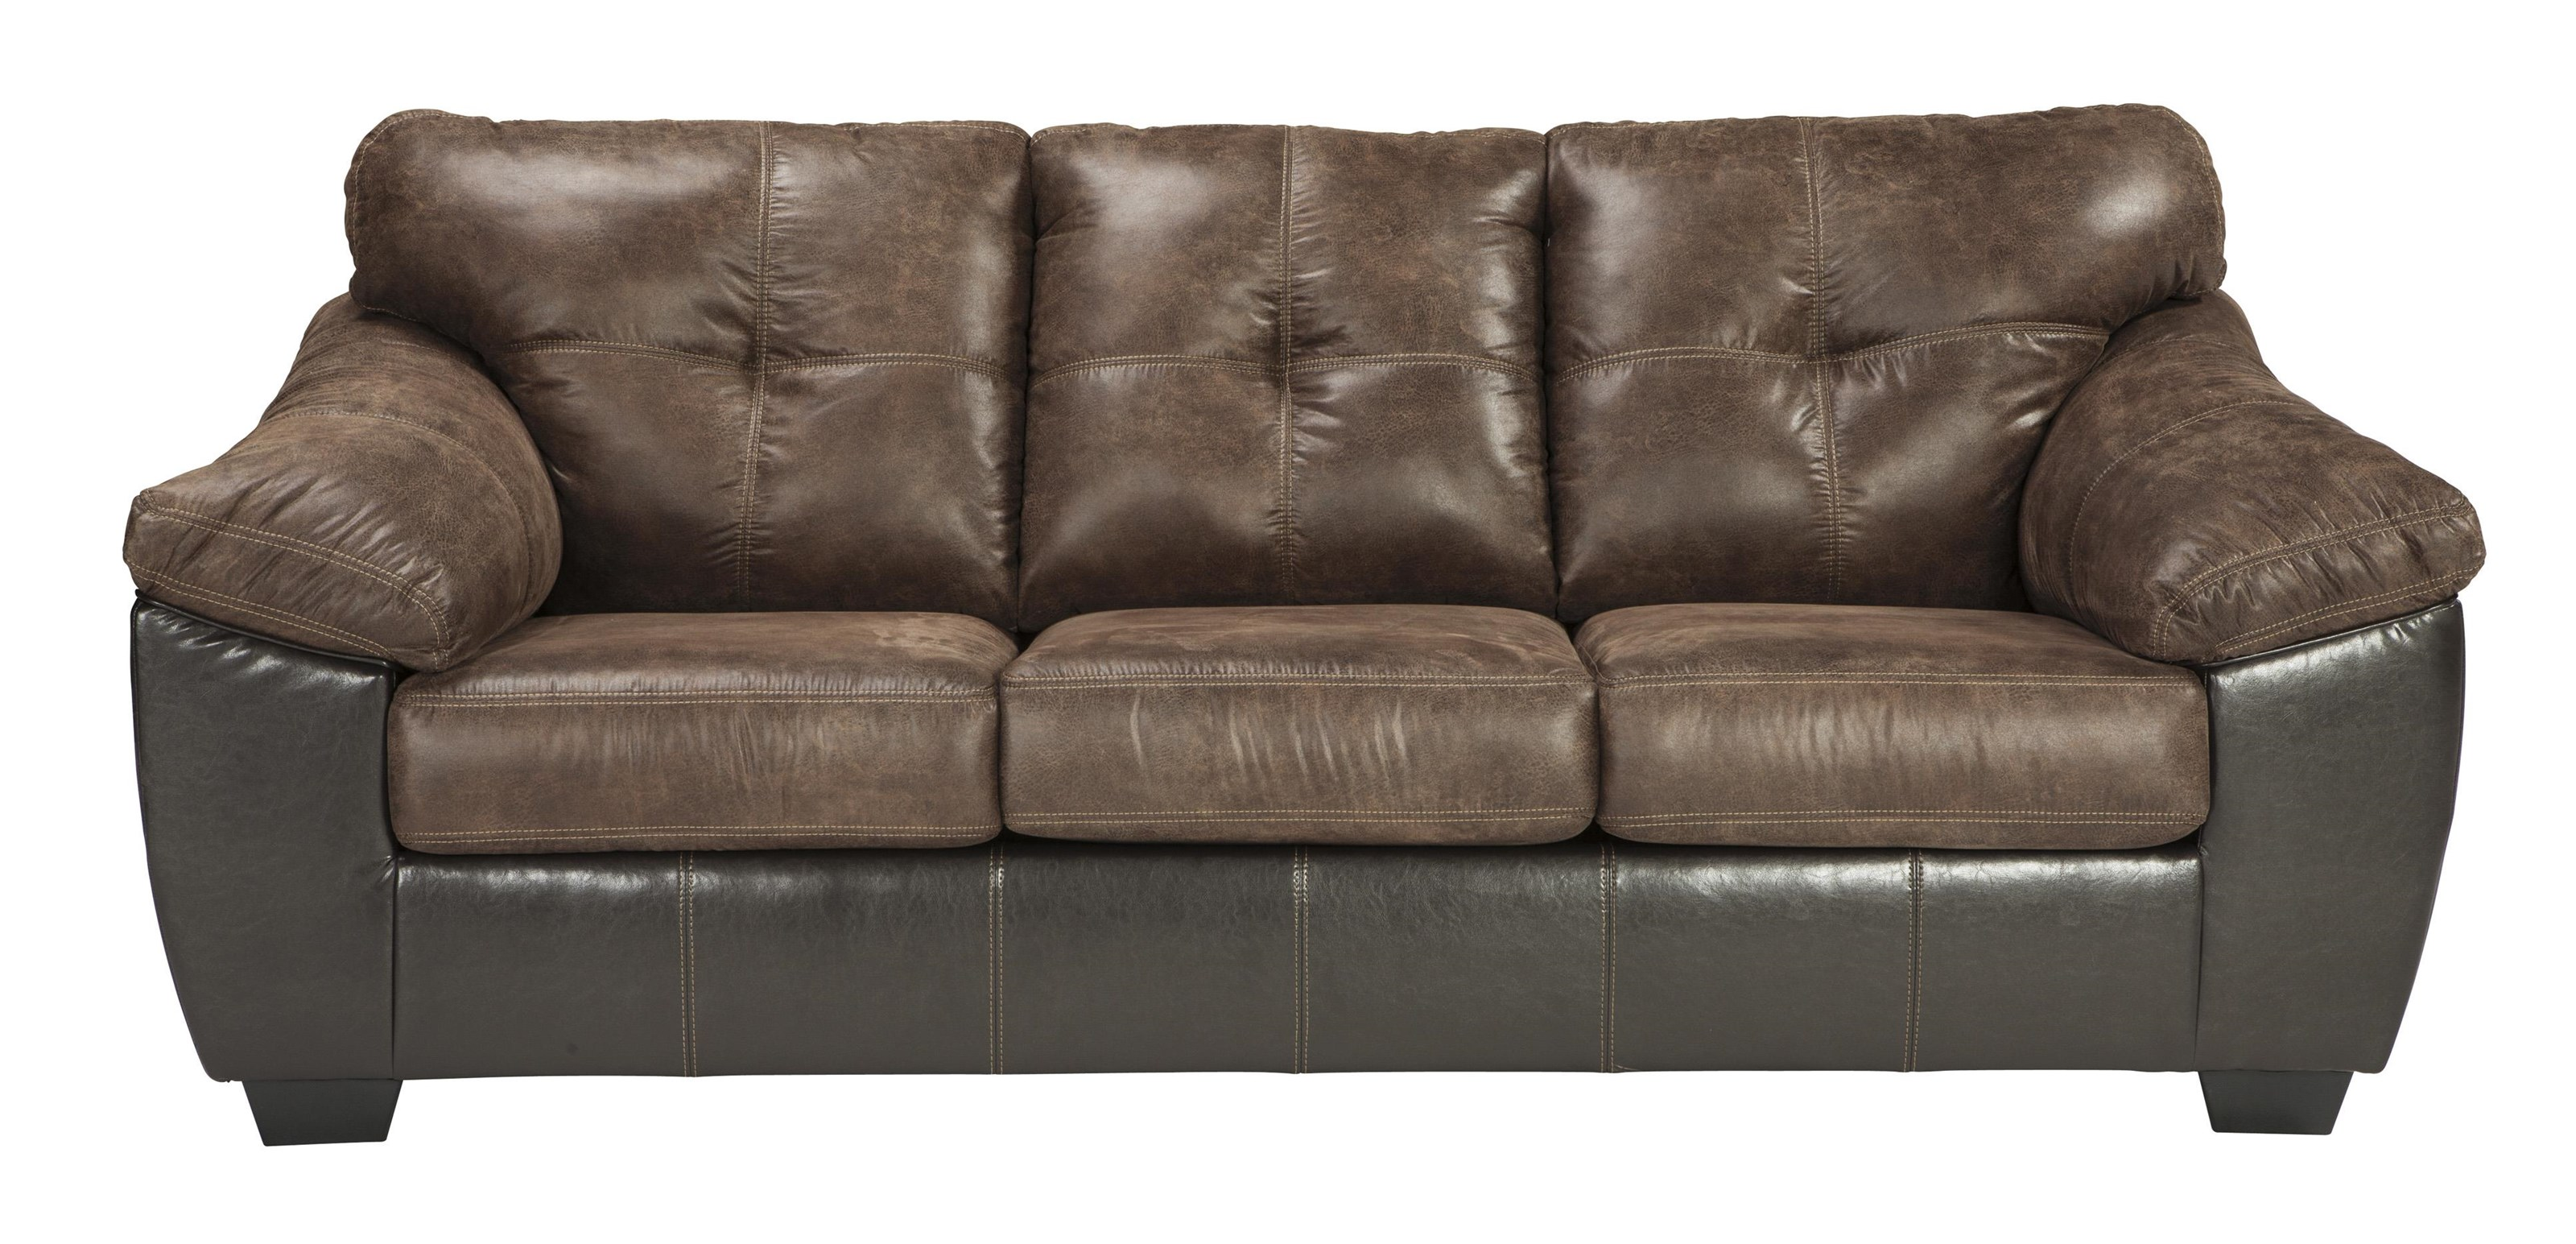 Gregale - 2 Tone Contemporary Stationary Sofa by Signature Design by Ashley at Westrich Furniture & Appliances